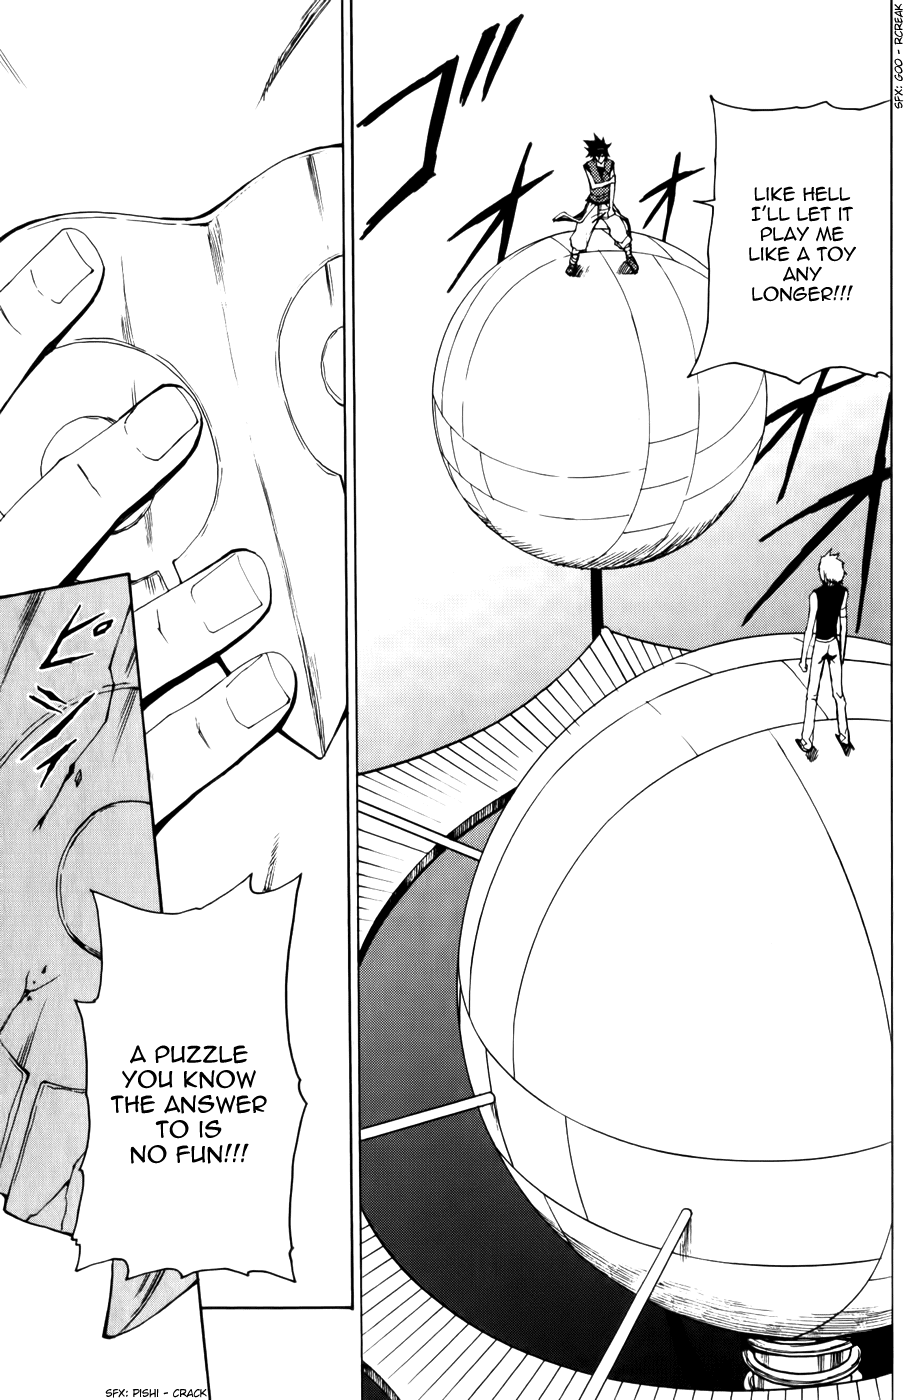 Phi Brain - Kami no Puzzle - Chapter 11